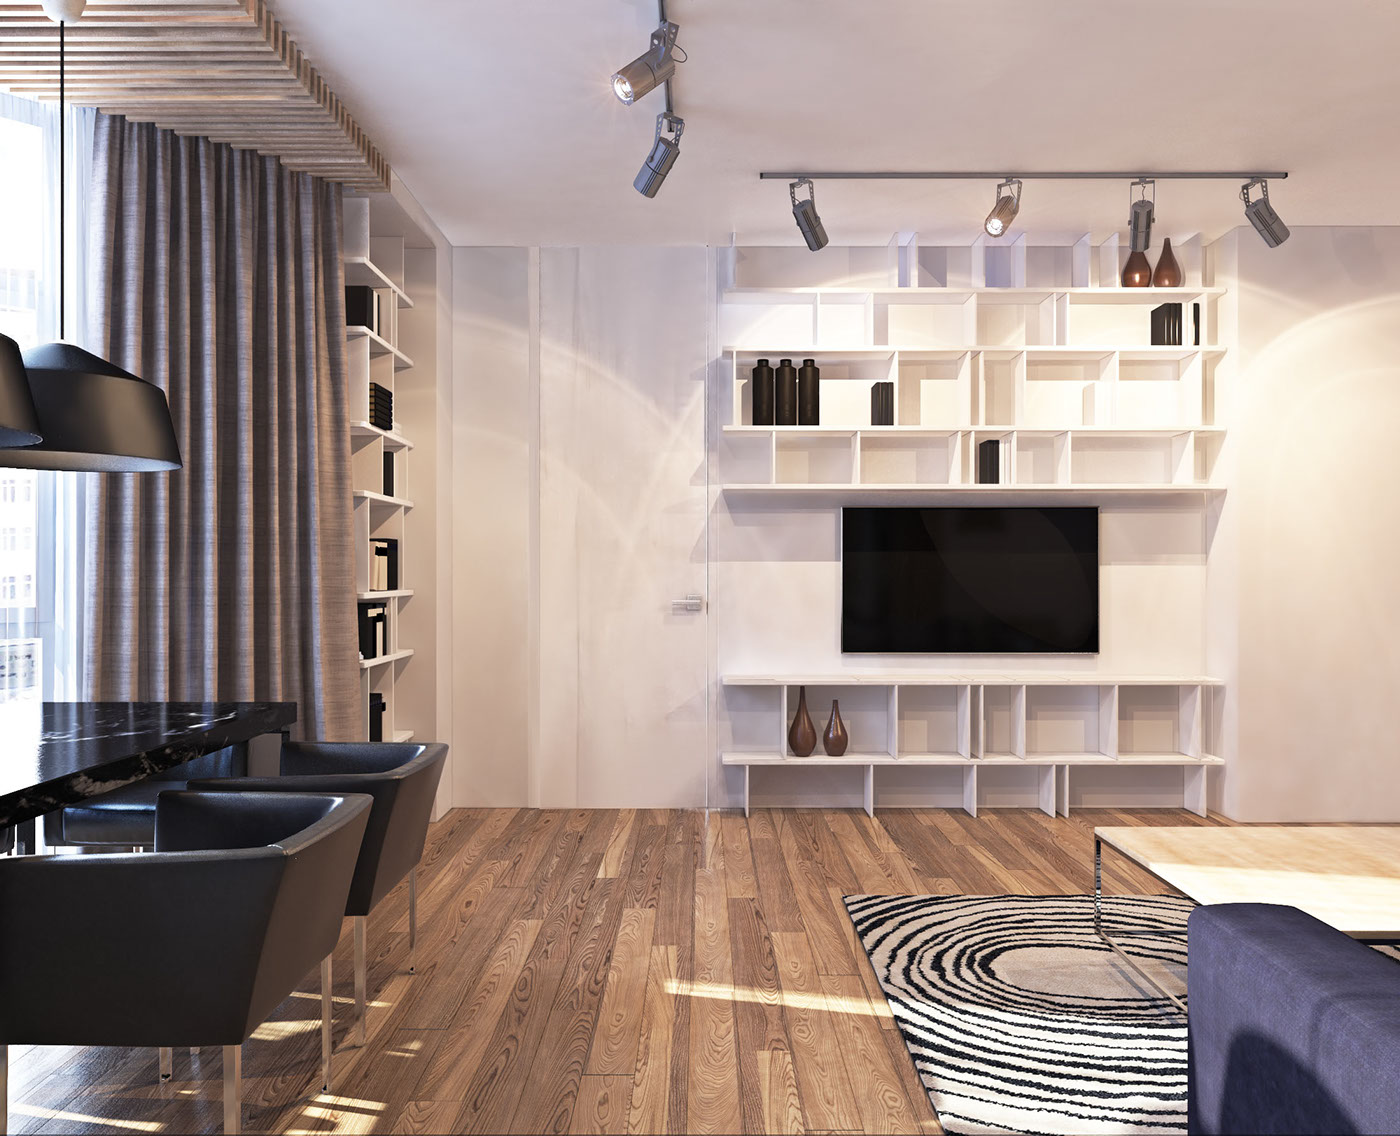 White Shelving - A contemporary apartment with lots of open space